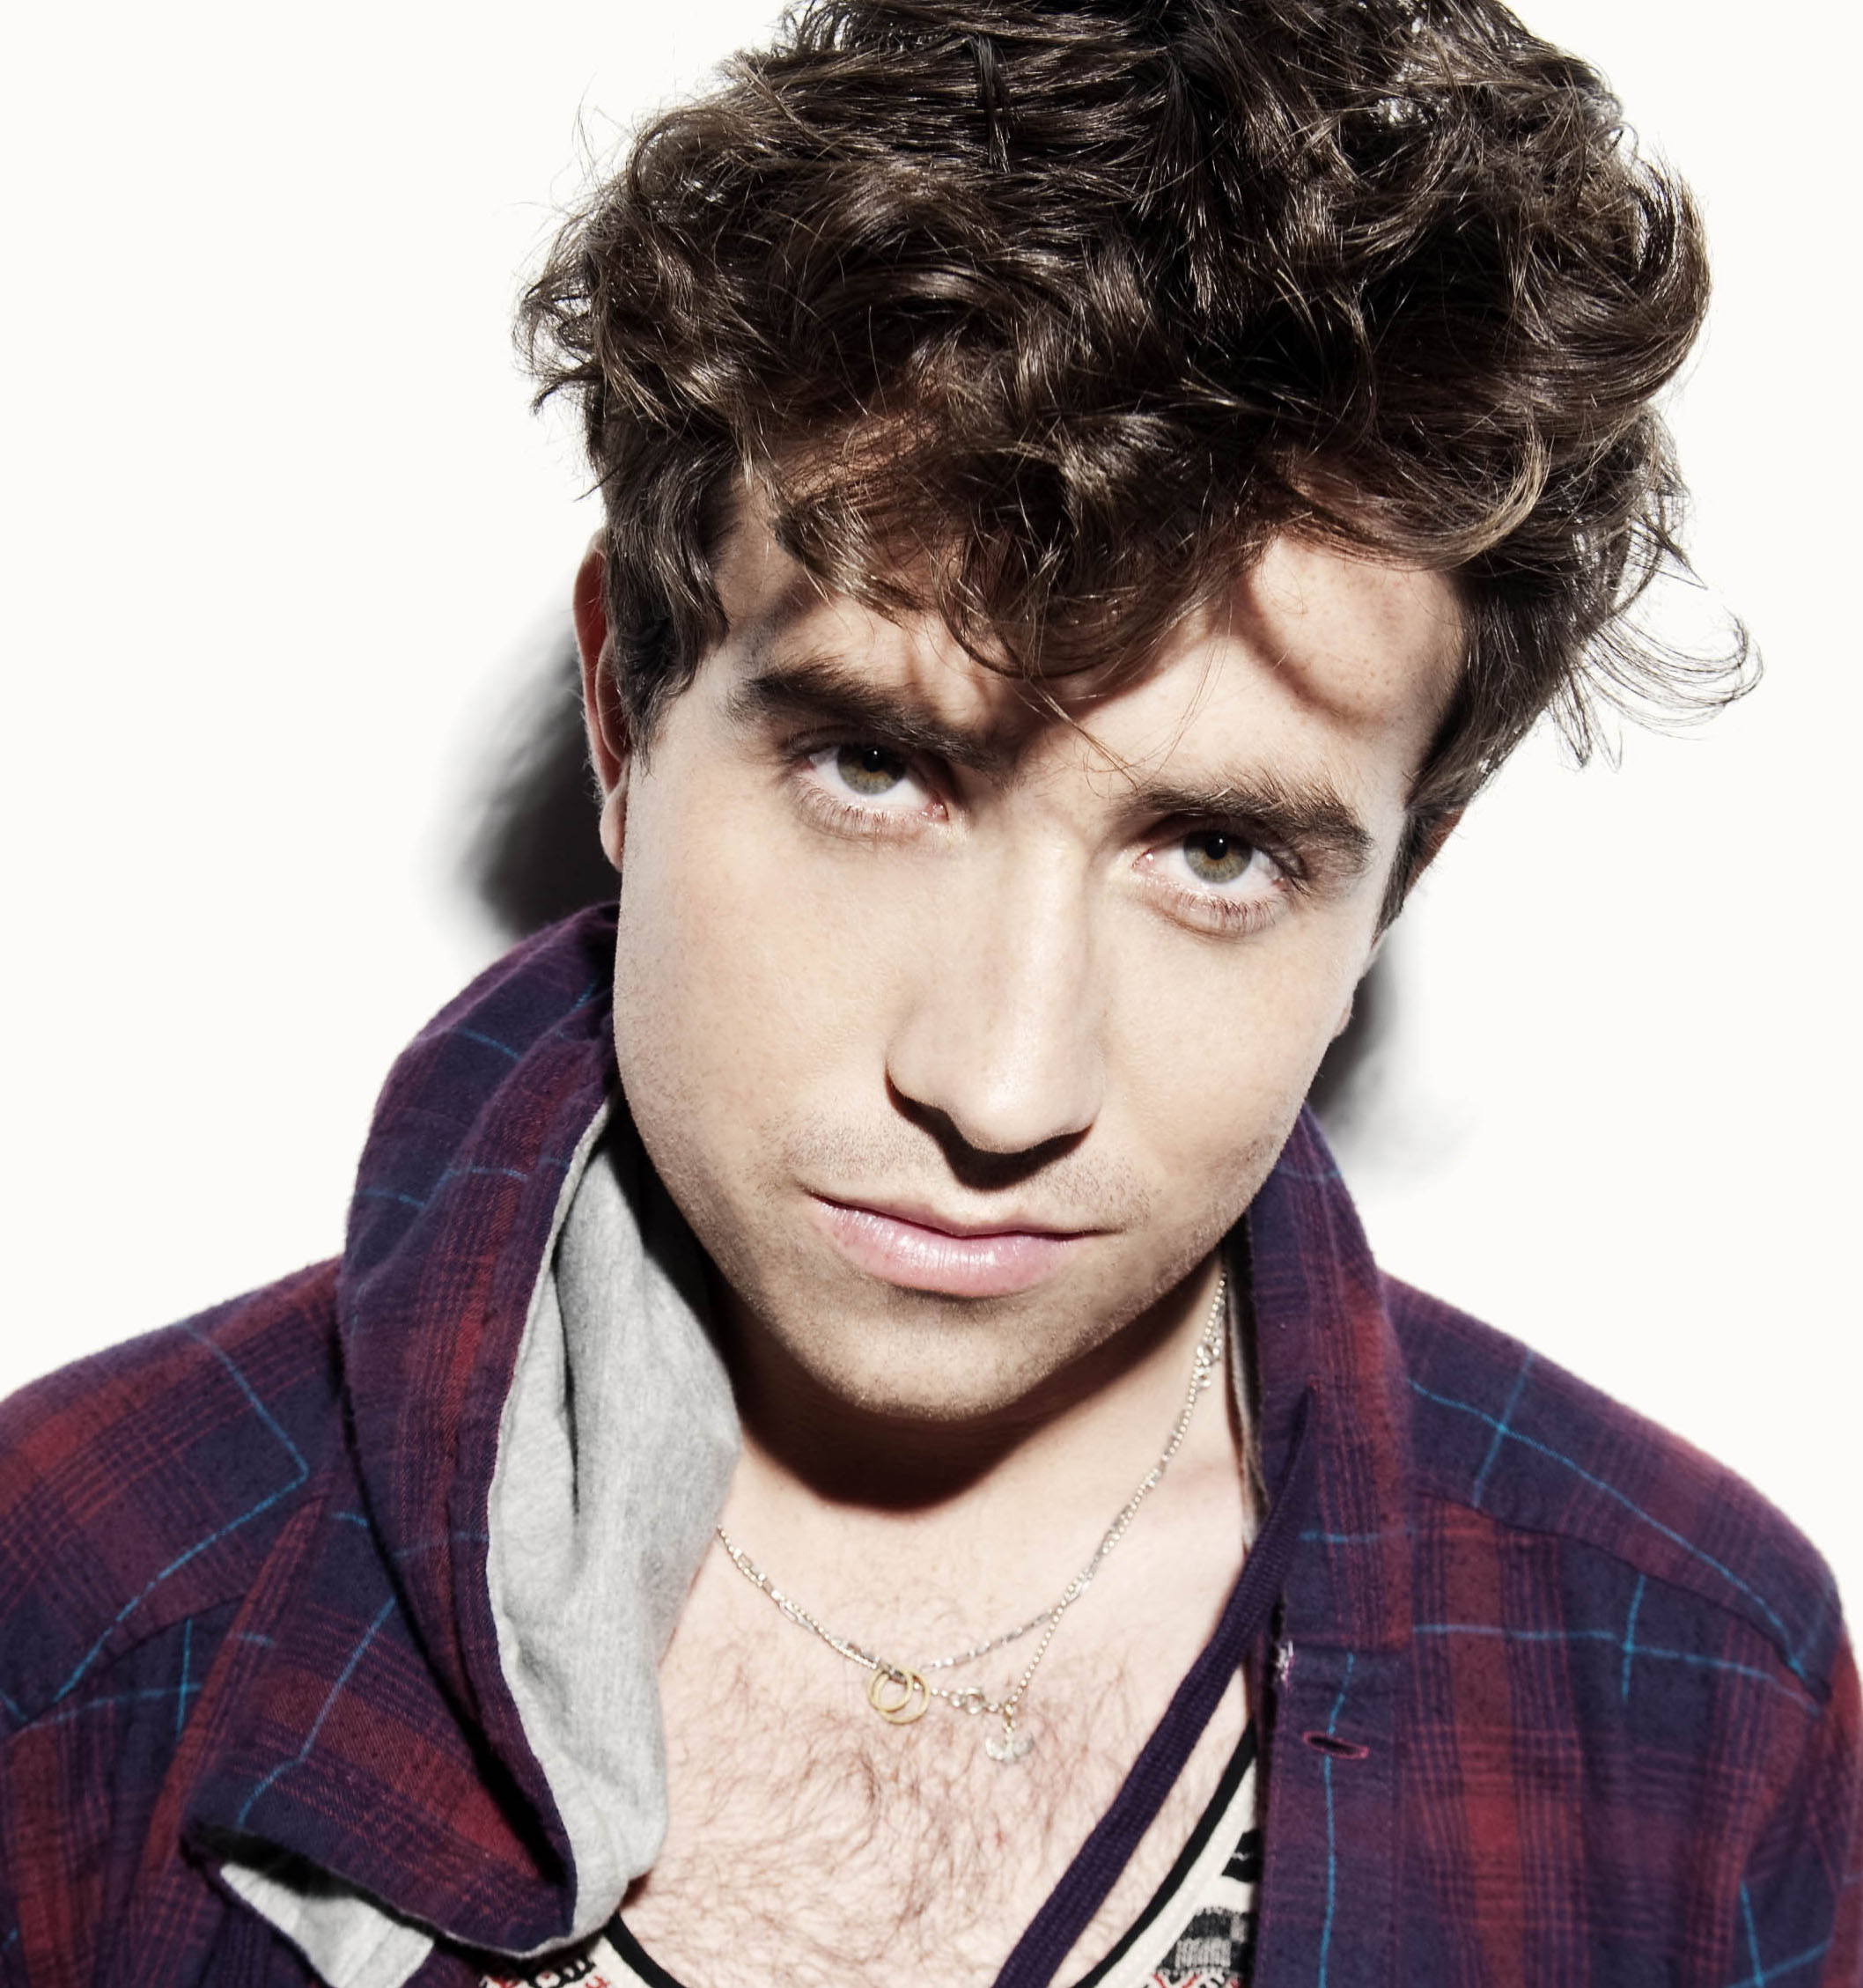 Nick Grimshaw is the new host of the breakfast show